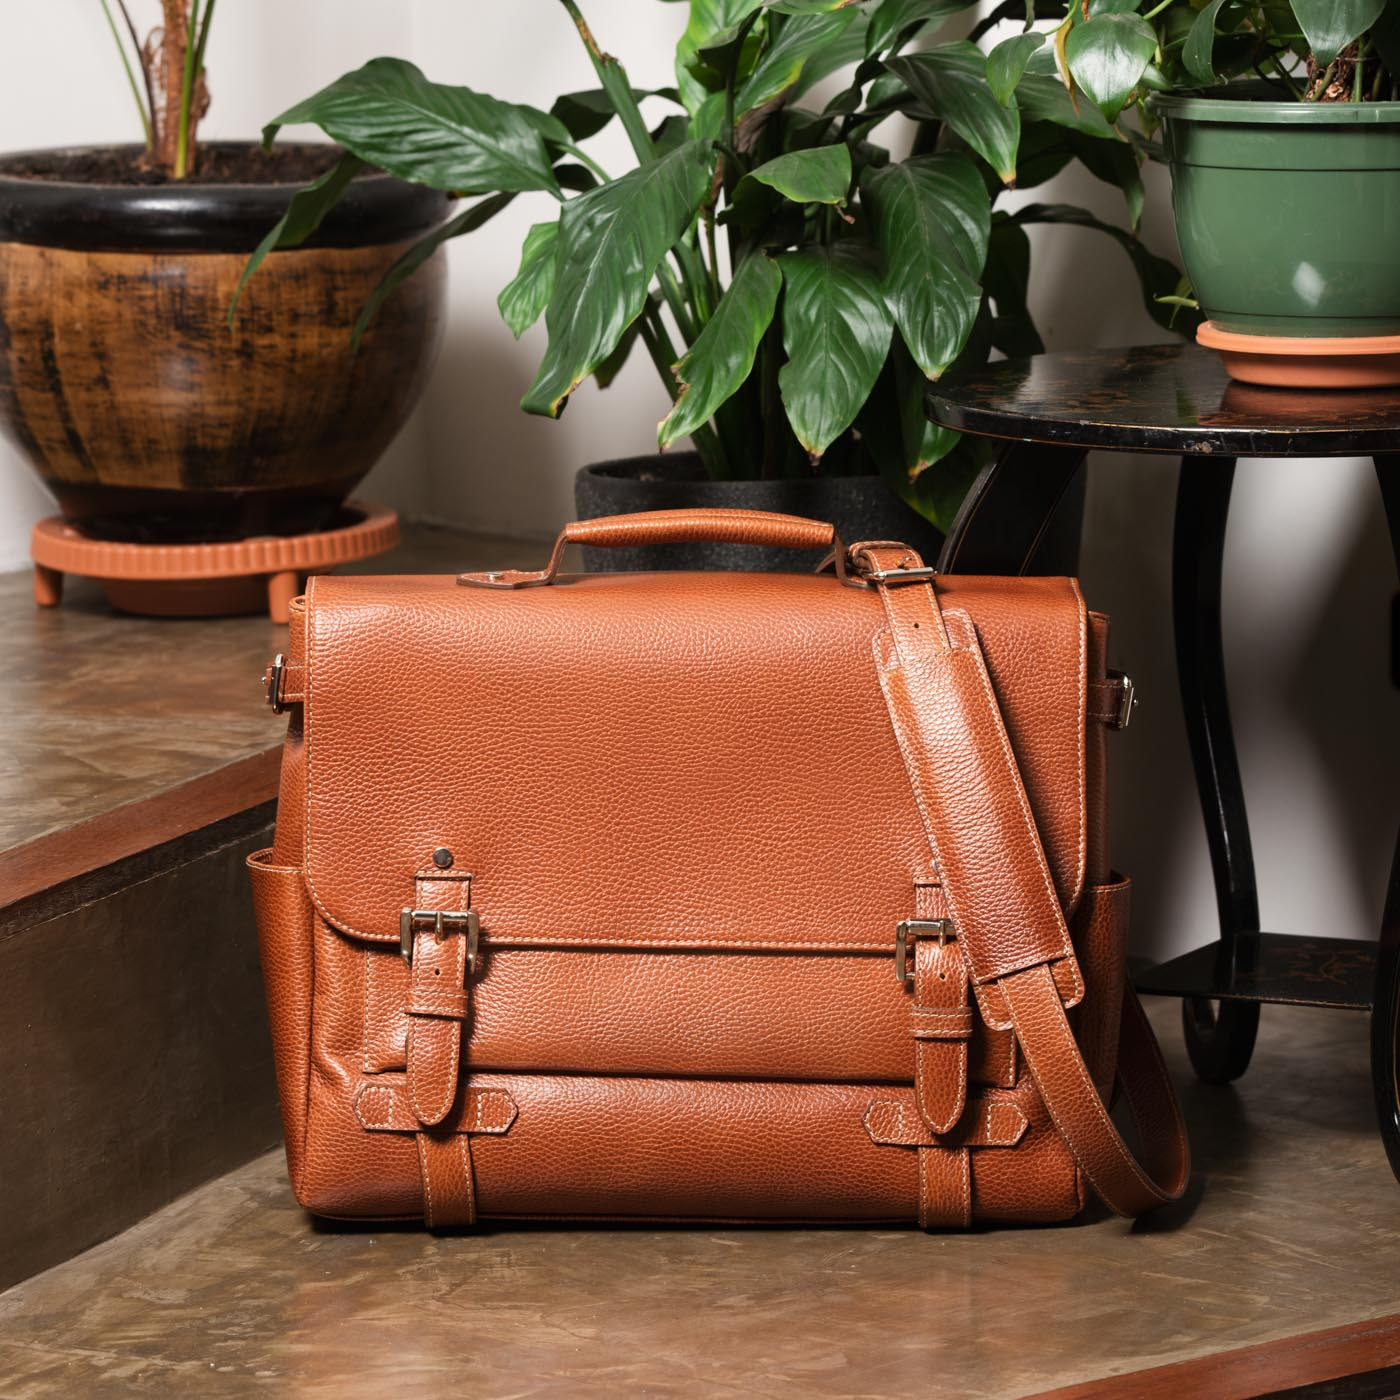 beckett simonon gaston messenger-bag pebbled leather tan lifestyle